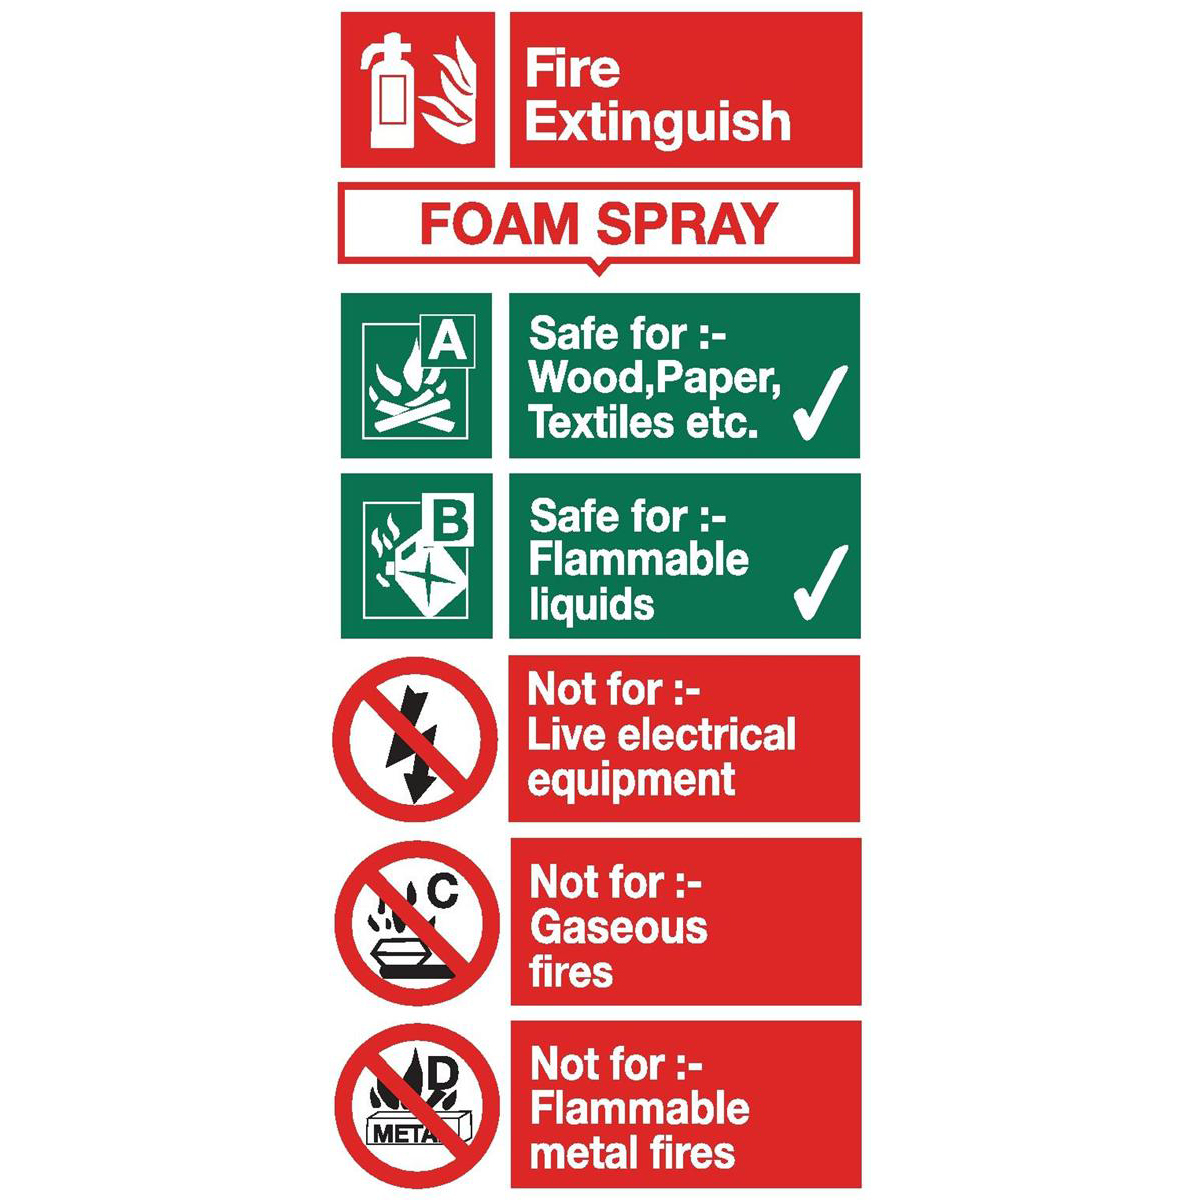 Stewart Superior Foam Spray Fire Extinguisher Safety Sign W100xH200mm Self-adhesive Vinyl Ref FF094SAV